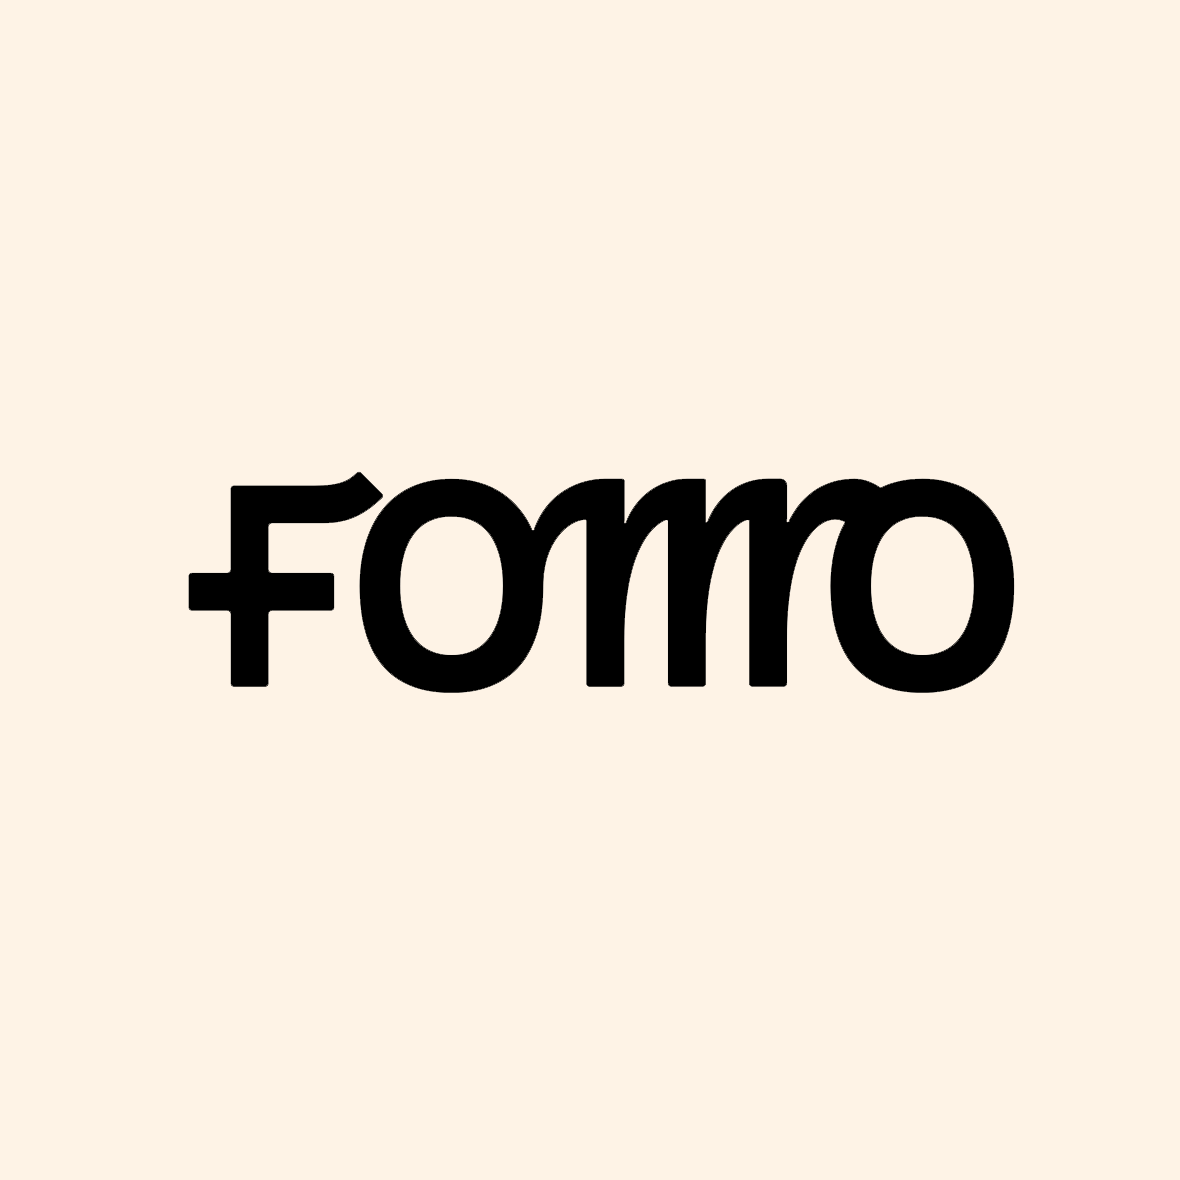 """Fomo is an ecommerce tool to increase on-site conversion rate. When you install it on your website, users will see popups (most often on the bottom left of their screen) showing you that other people have recently placed an order on the website, hence the name """"FOMO""""."""